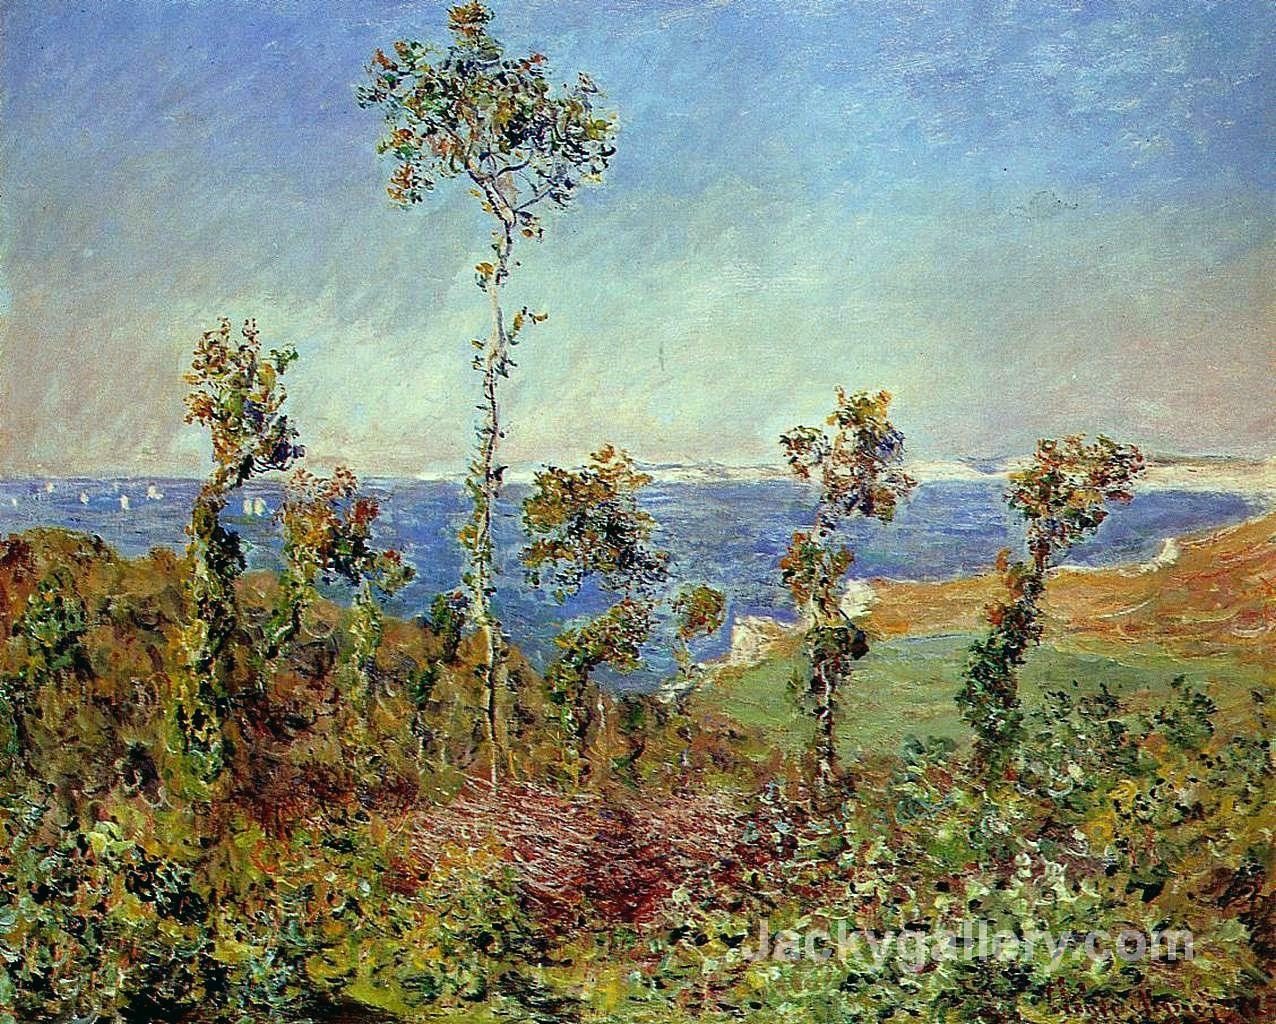 The Fonds at Varengeville by Claude Monet paintings reproduction